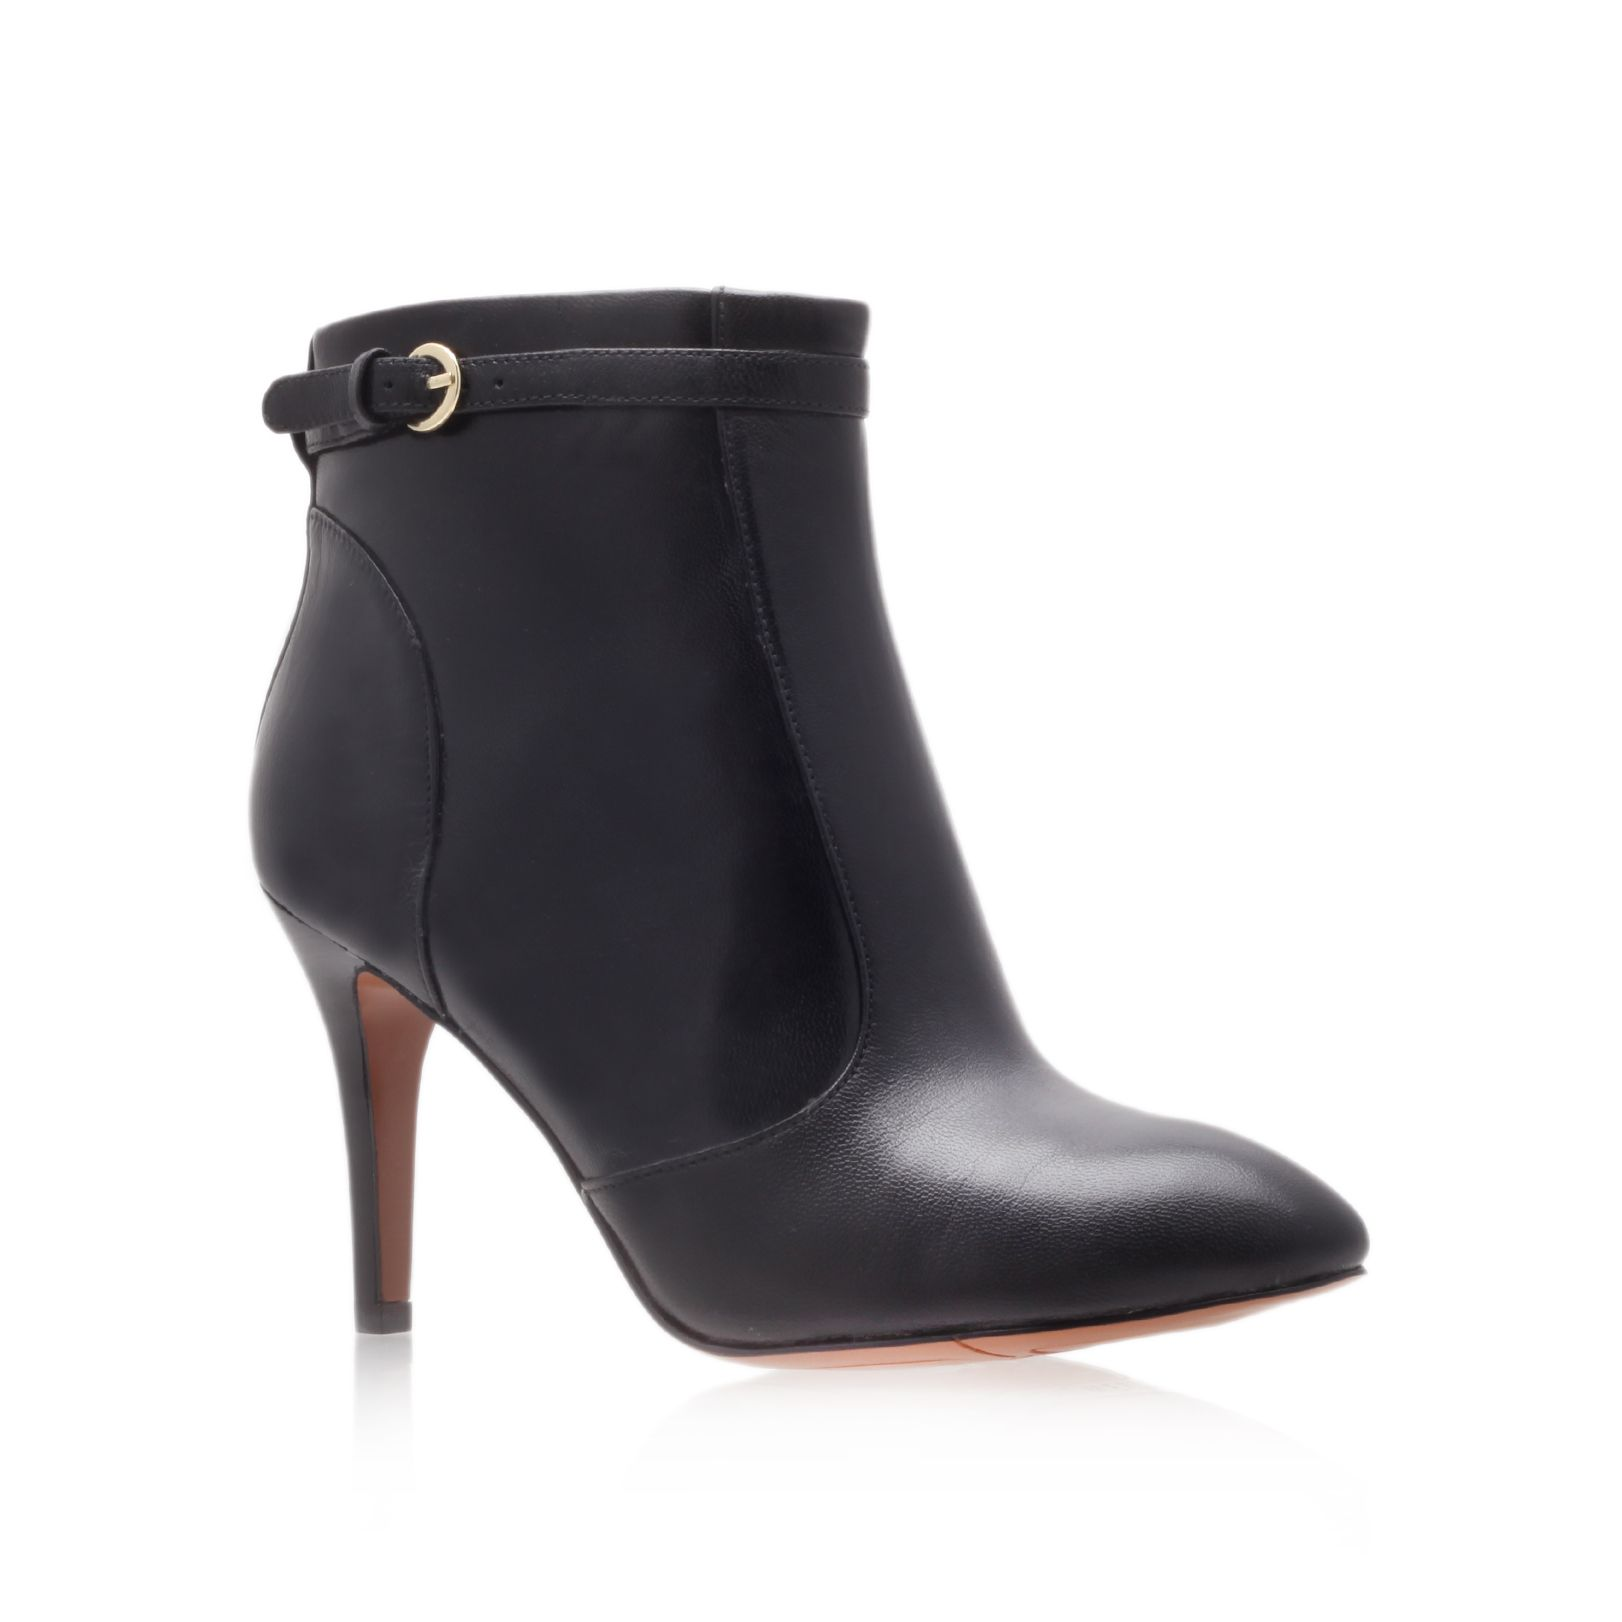 Mainstay ankle boots